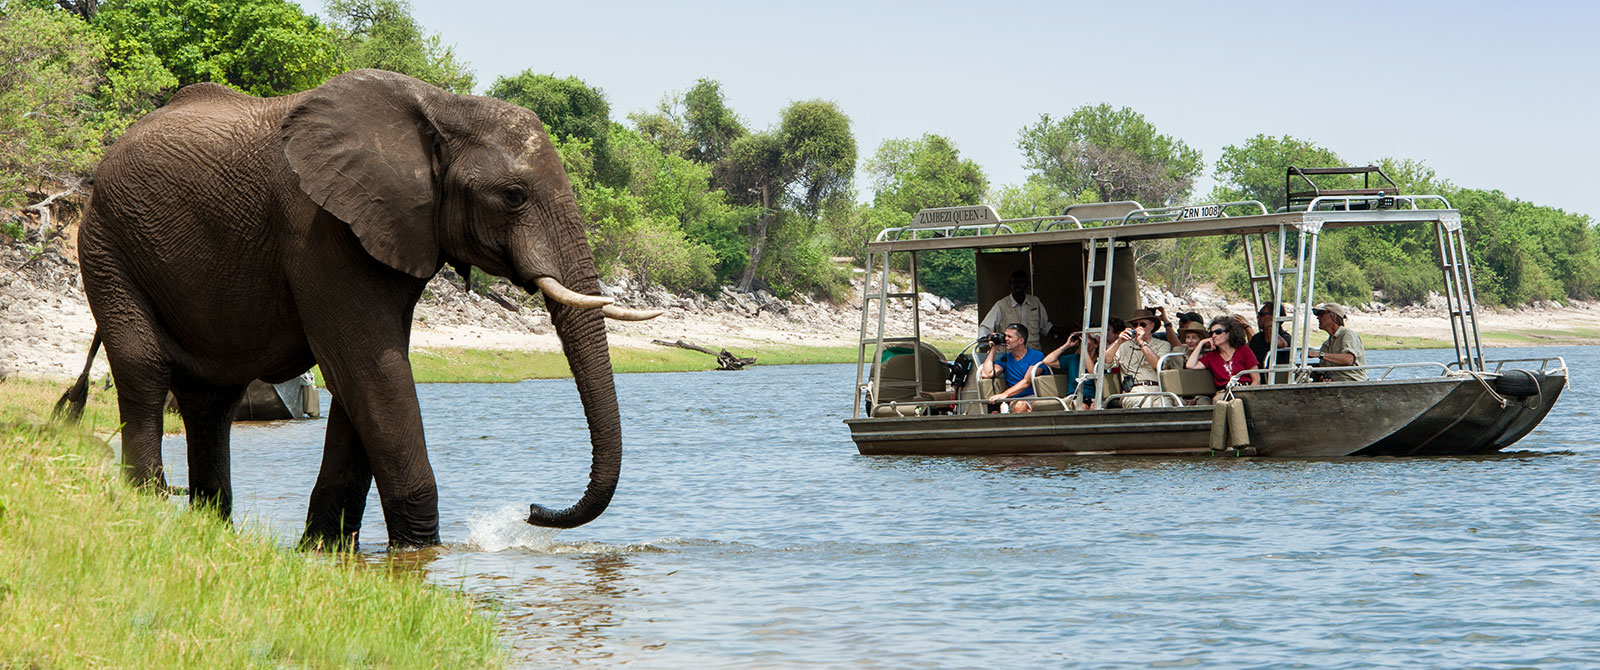 Elephant in the Chobe River - Excursion from Zambezi Queen River Cruise